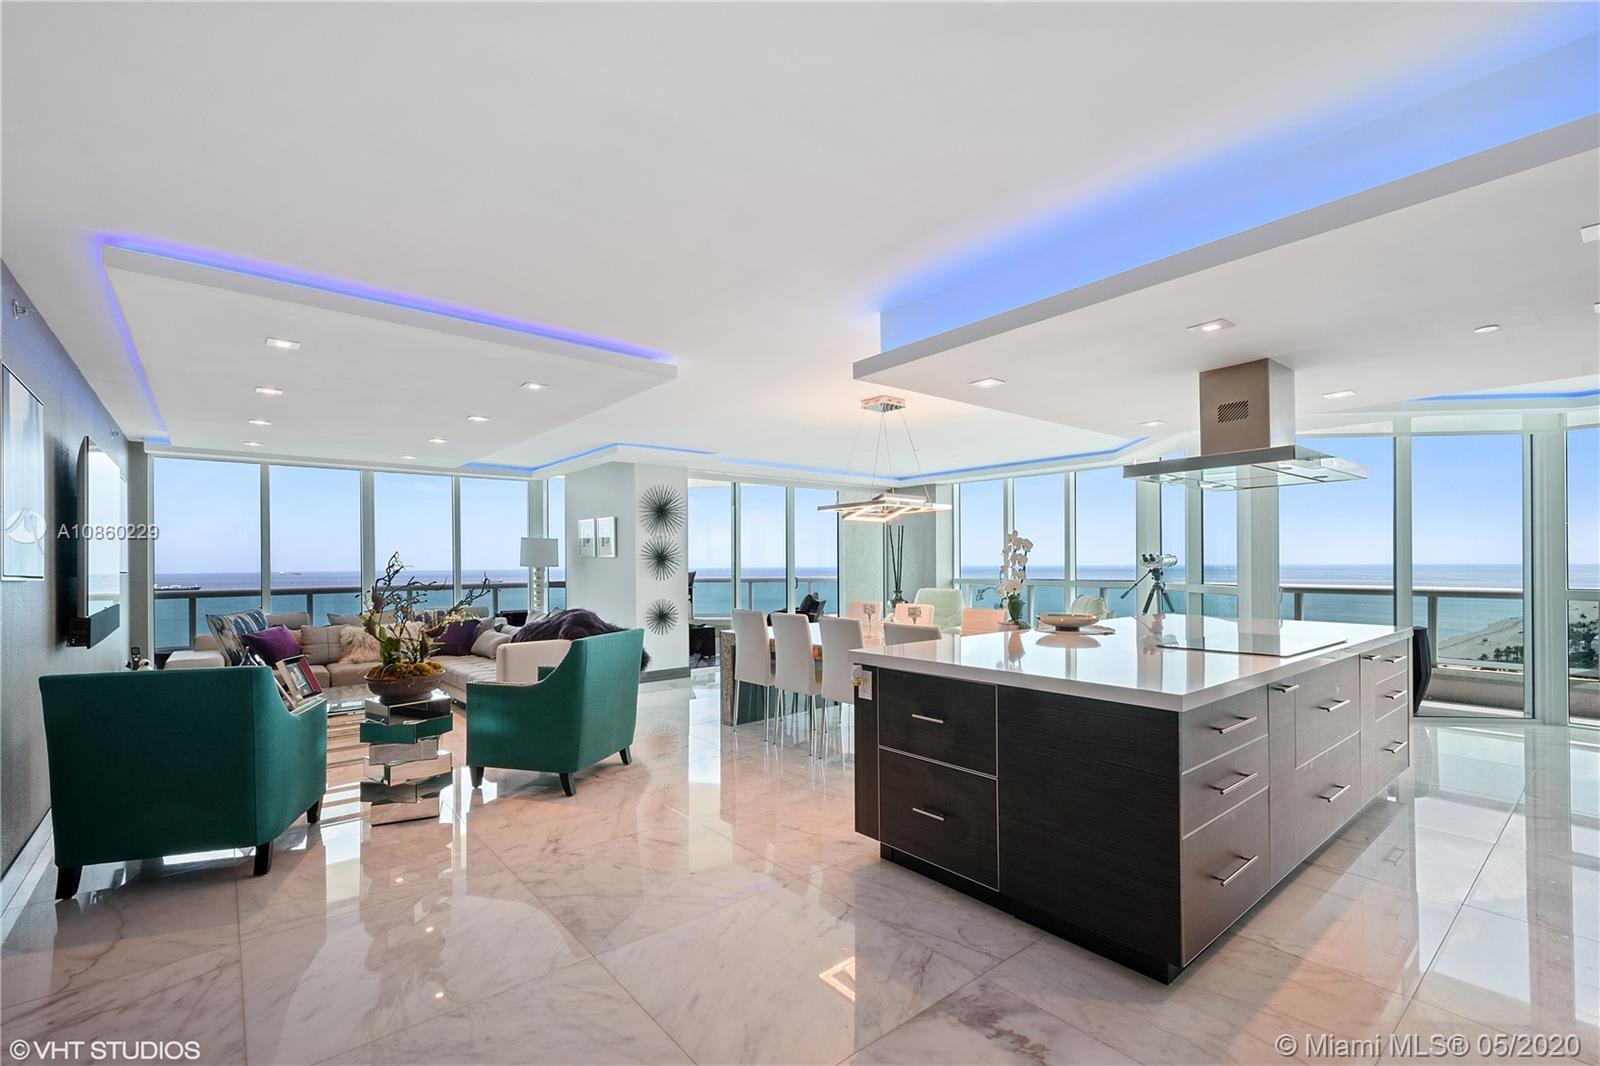 PRIME LOCATION ON A1A WITH PANORAMIC SE OCEAN VIEWS ON THE 24TH FLOOR! THIS BEAUTIFUL TURNKEY CONDO